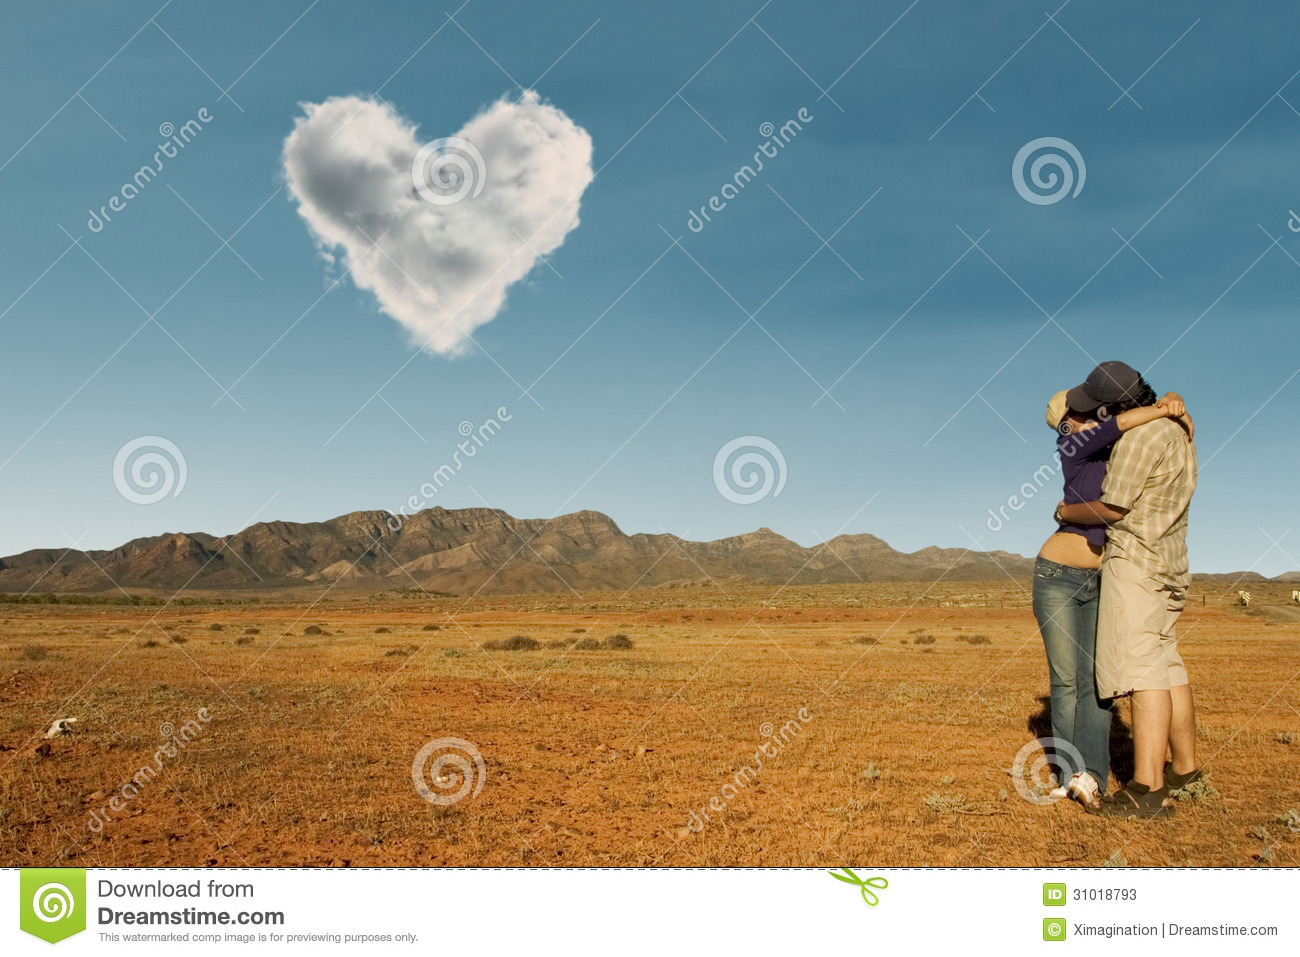 couples kissing Pictures, Images & Photos | Photobucket